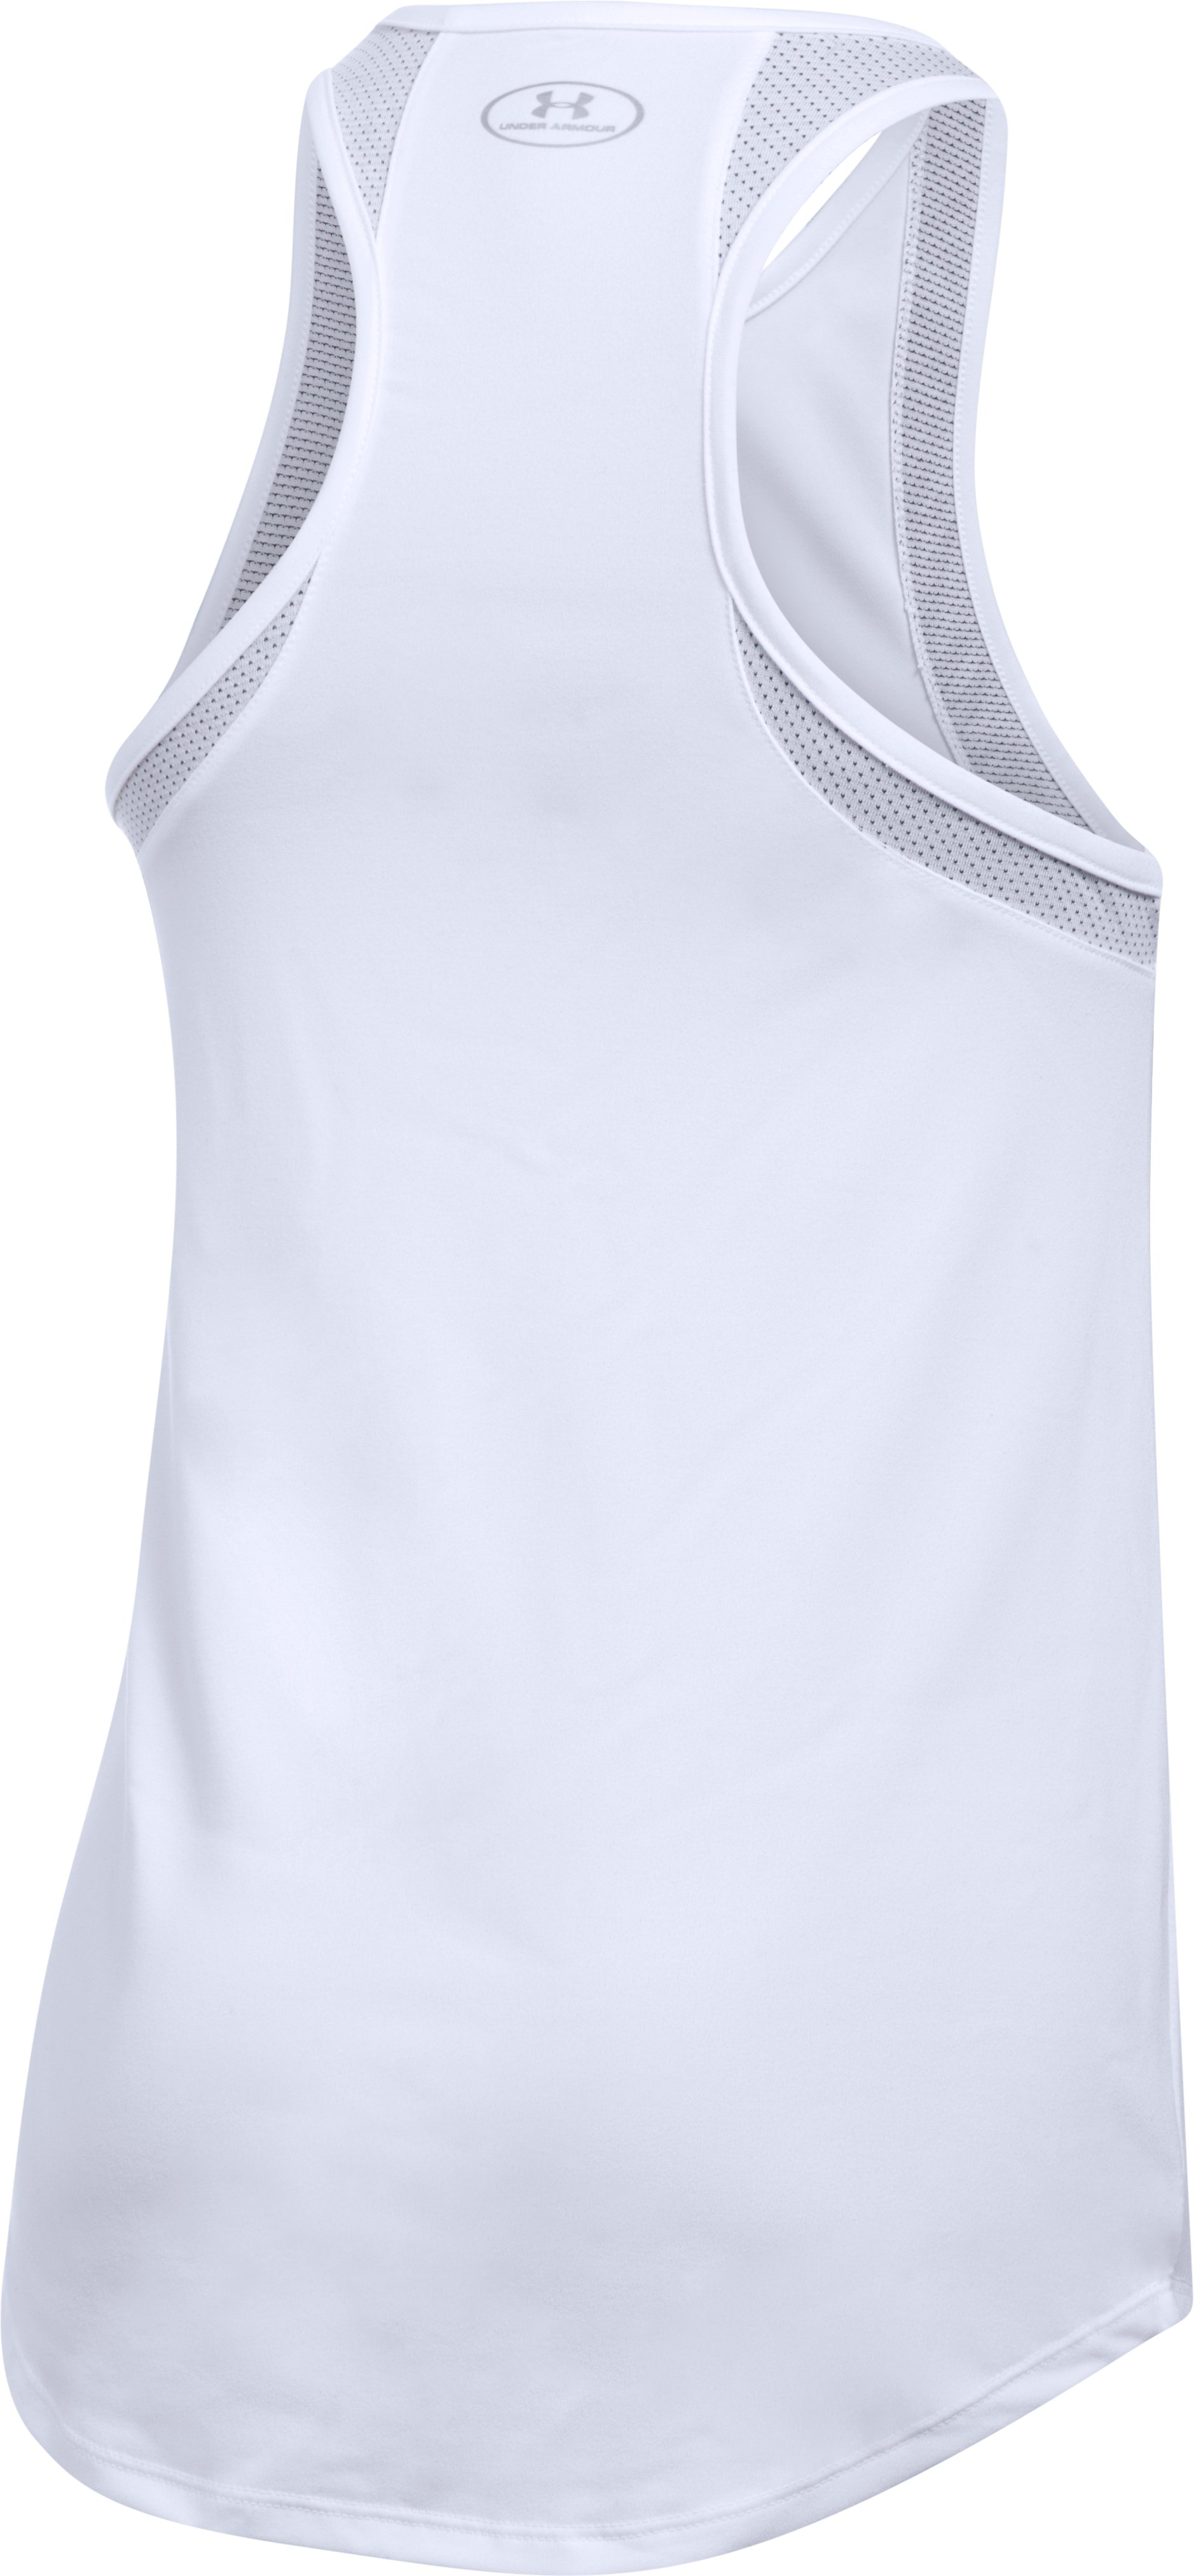 Women's Miami Marlins UA Tech™ Mesh Tank, White